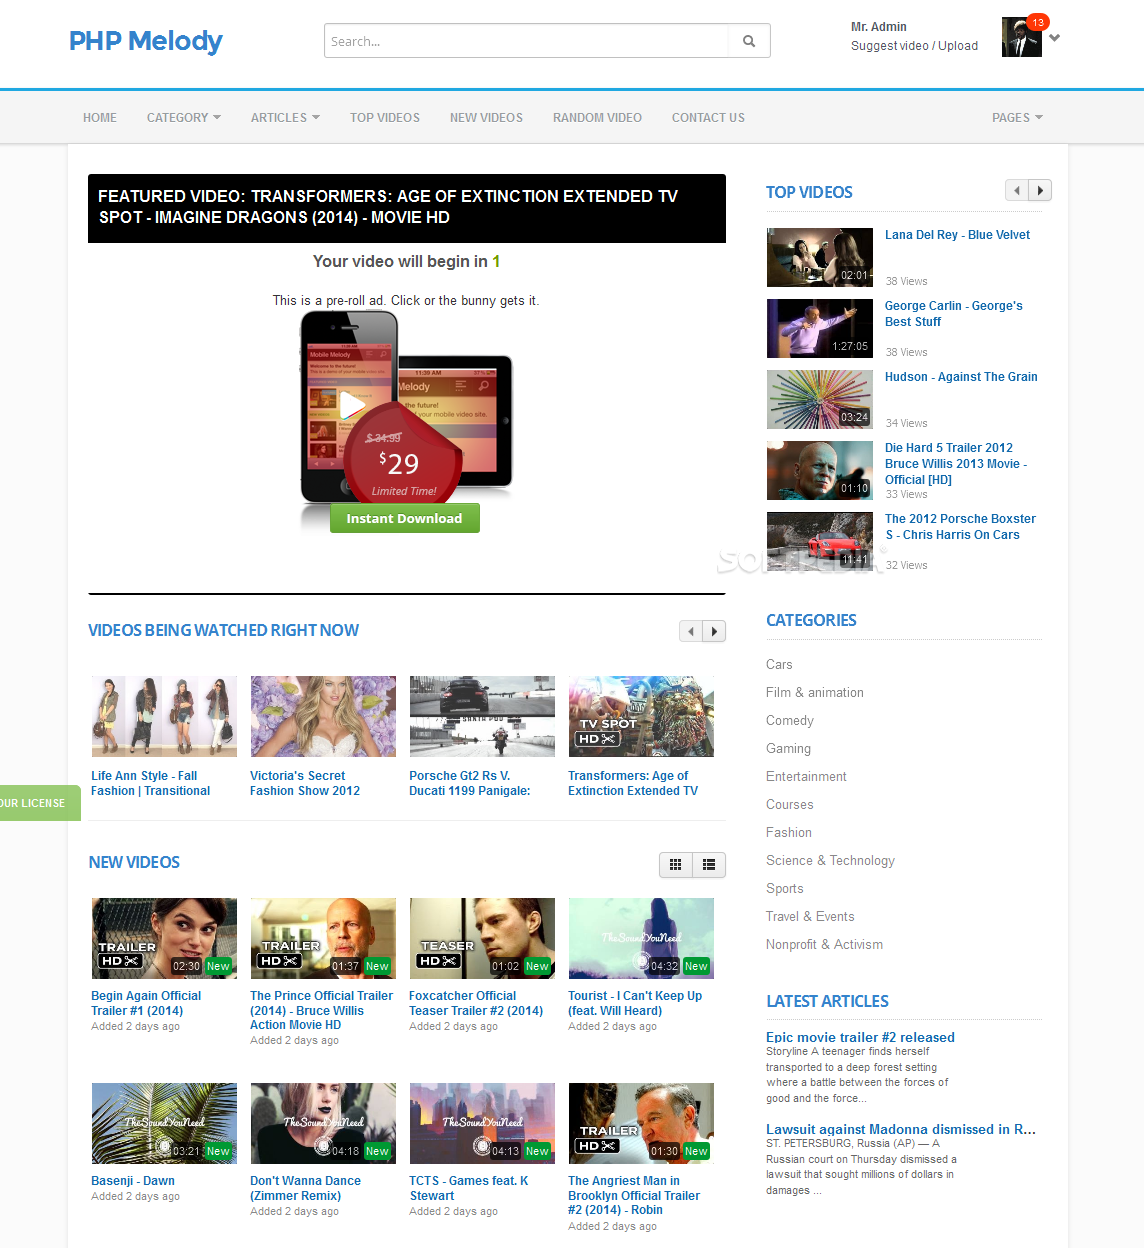 PHP Melody - The PHP Melody frontend looks like a classic video sharing portal